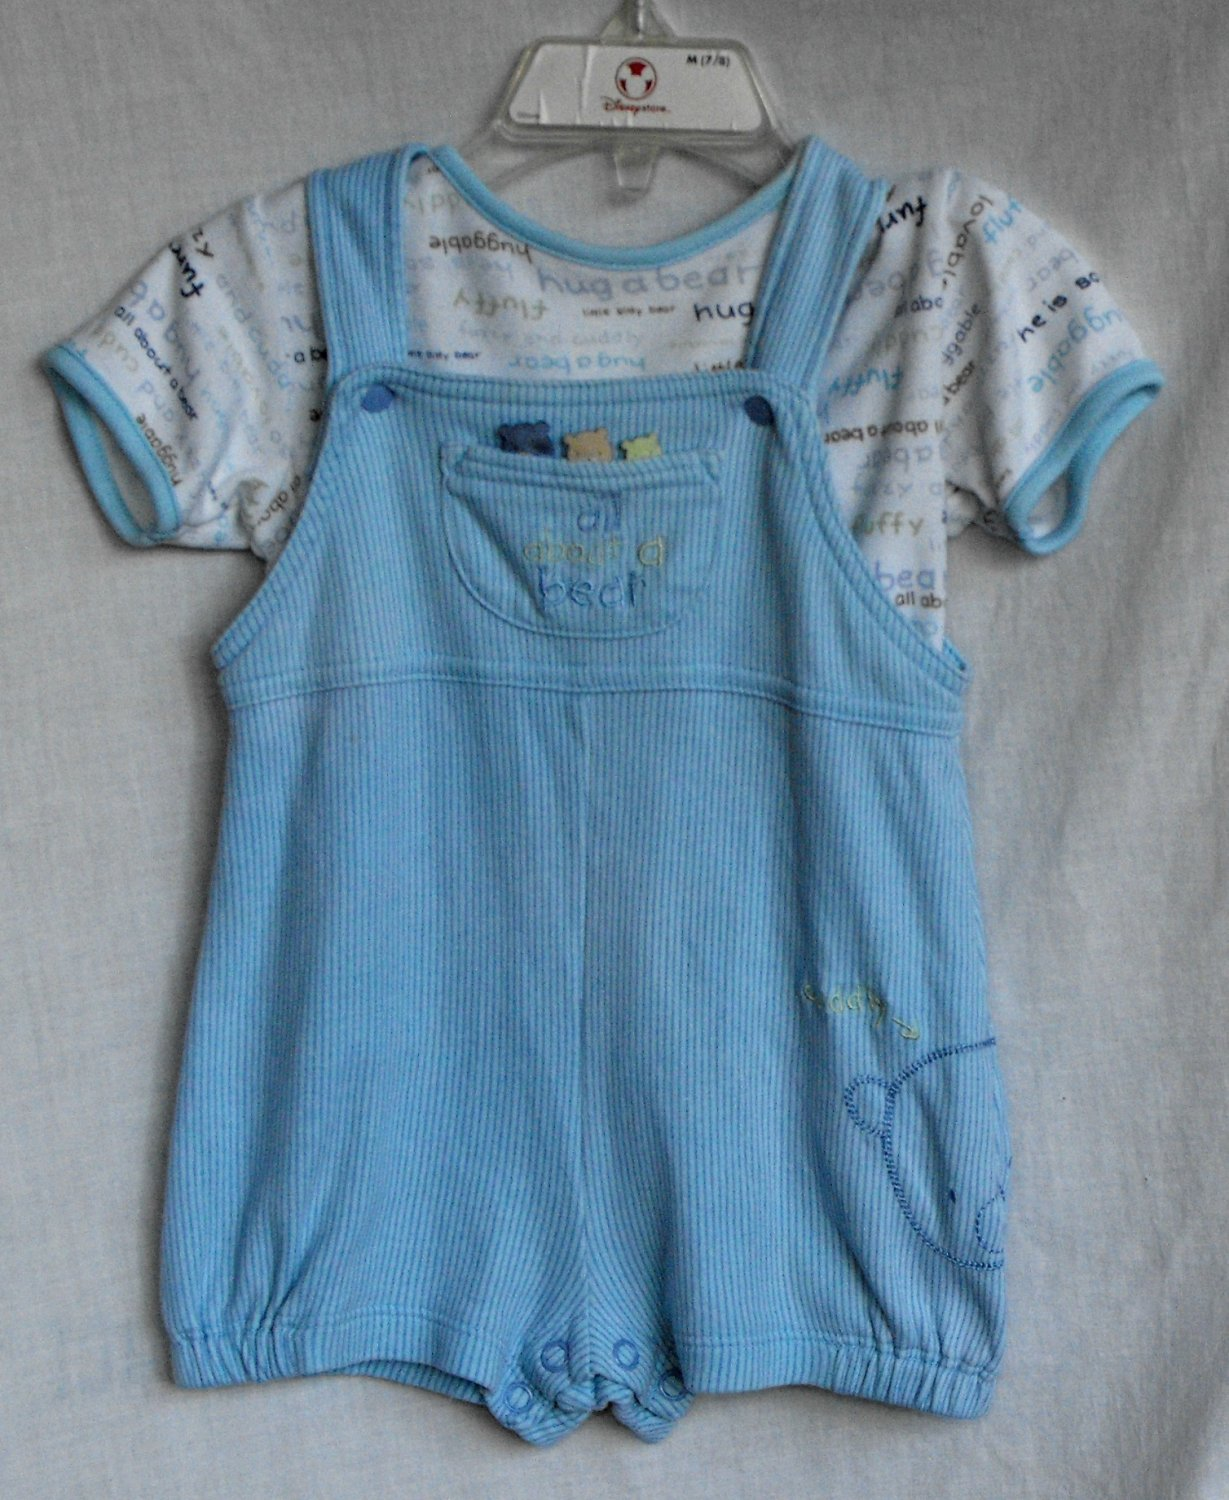 Carter's 6-9 Month All About A Bear 2 Piece Spring Summer Overall Outfit